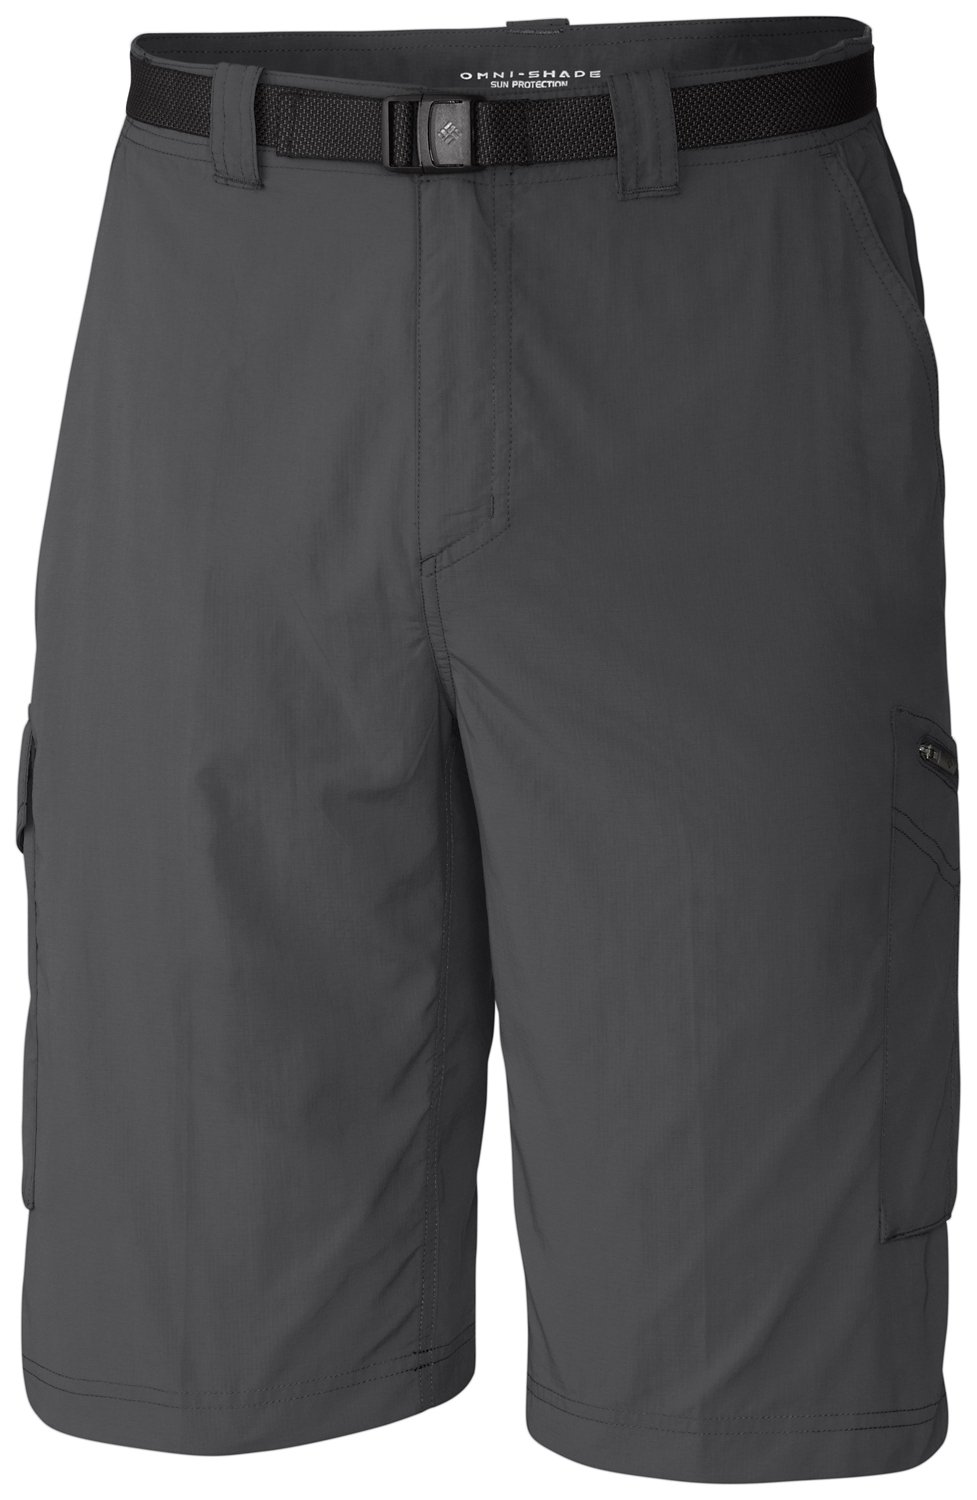 4fcca392a Display product reviews for Columbia Sportswear Men's Silver Ridge Cargo  Short